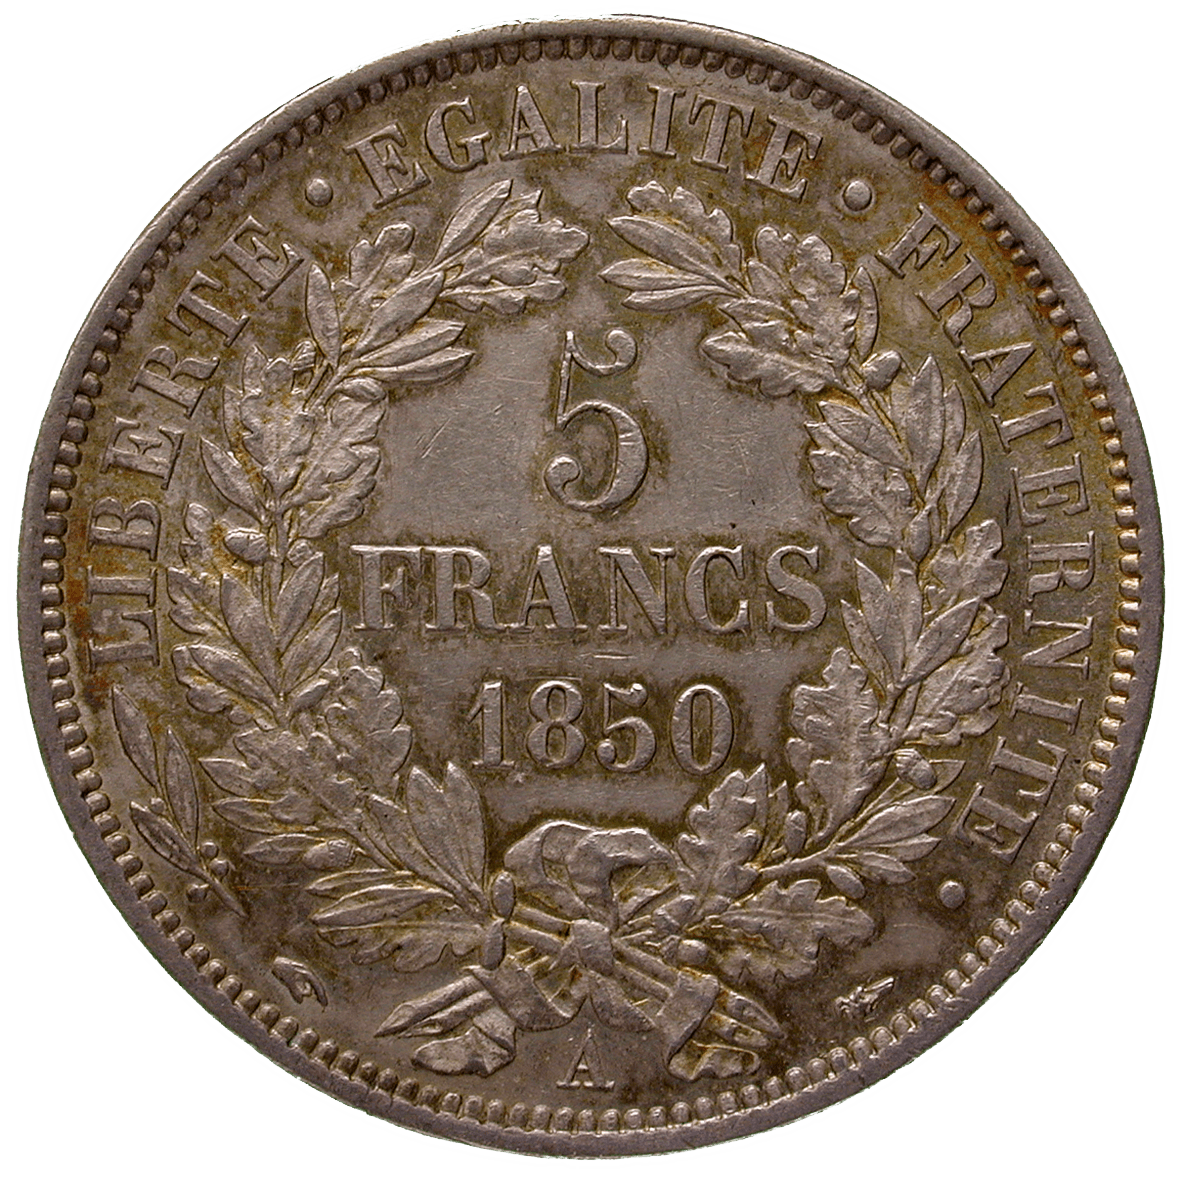 Republic of France, 5 Francs 1850 (reverse)